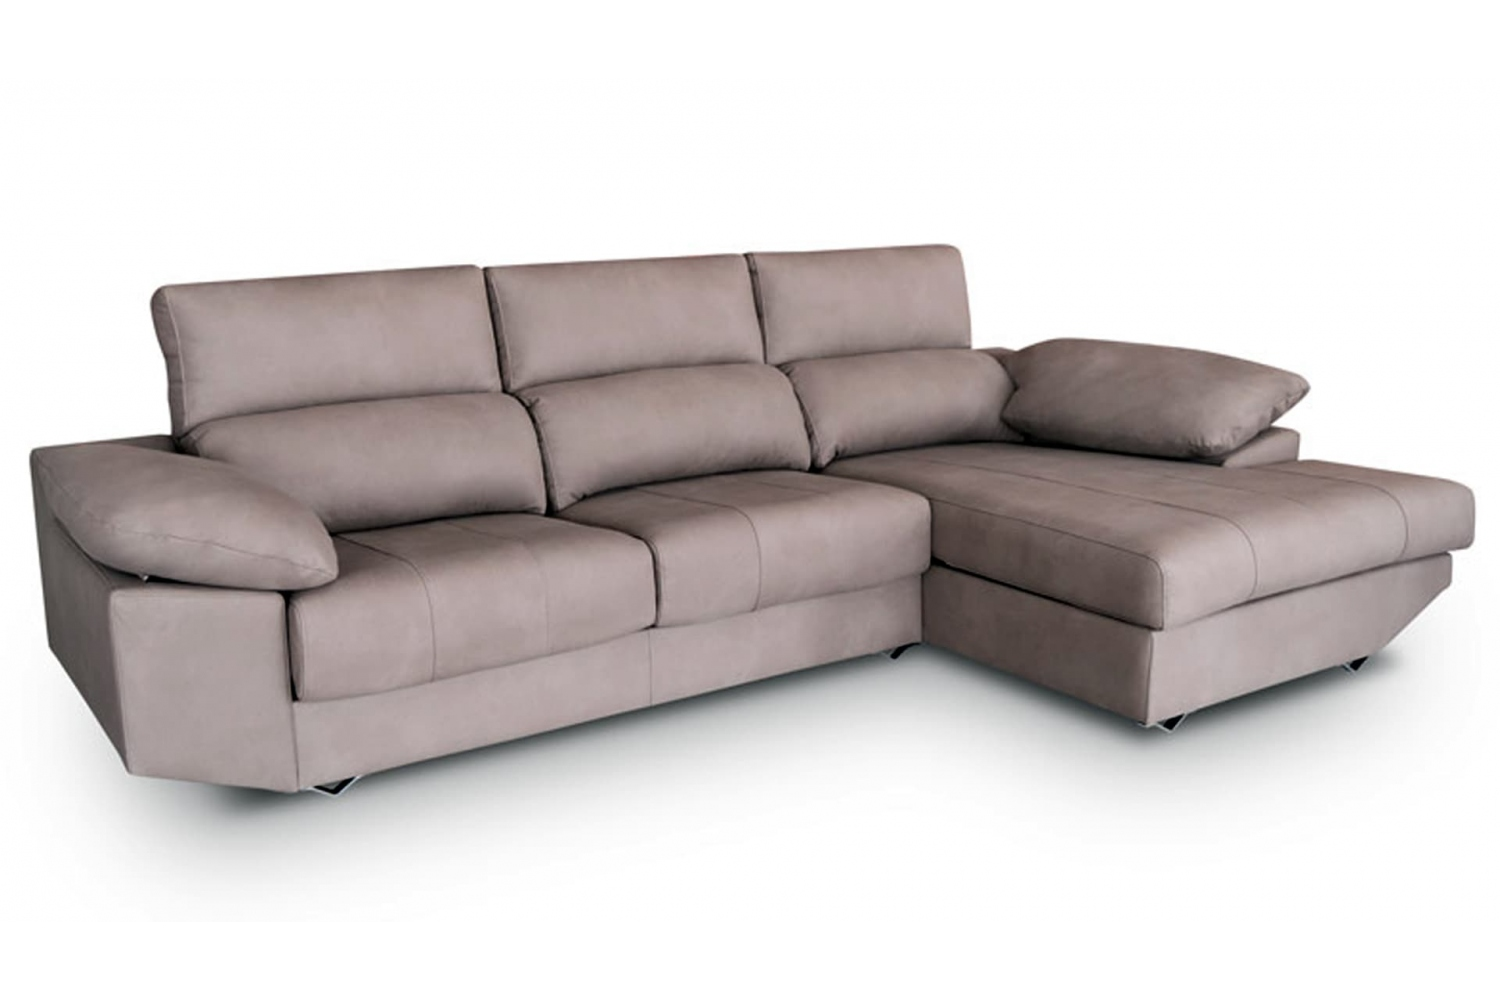 Que Es Arcon Sofa Sofá Chaiselongue Pisa